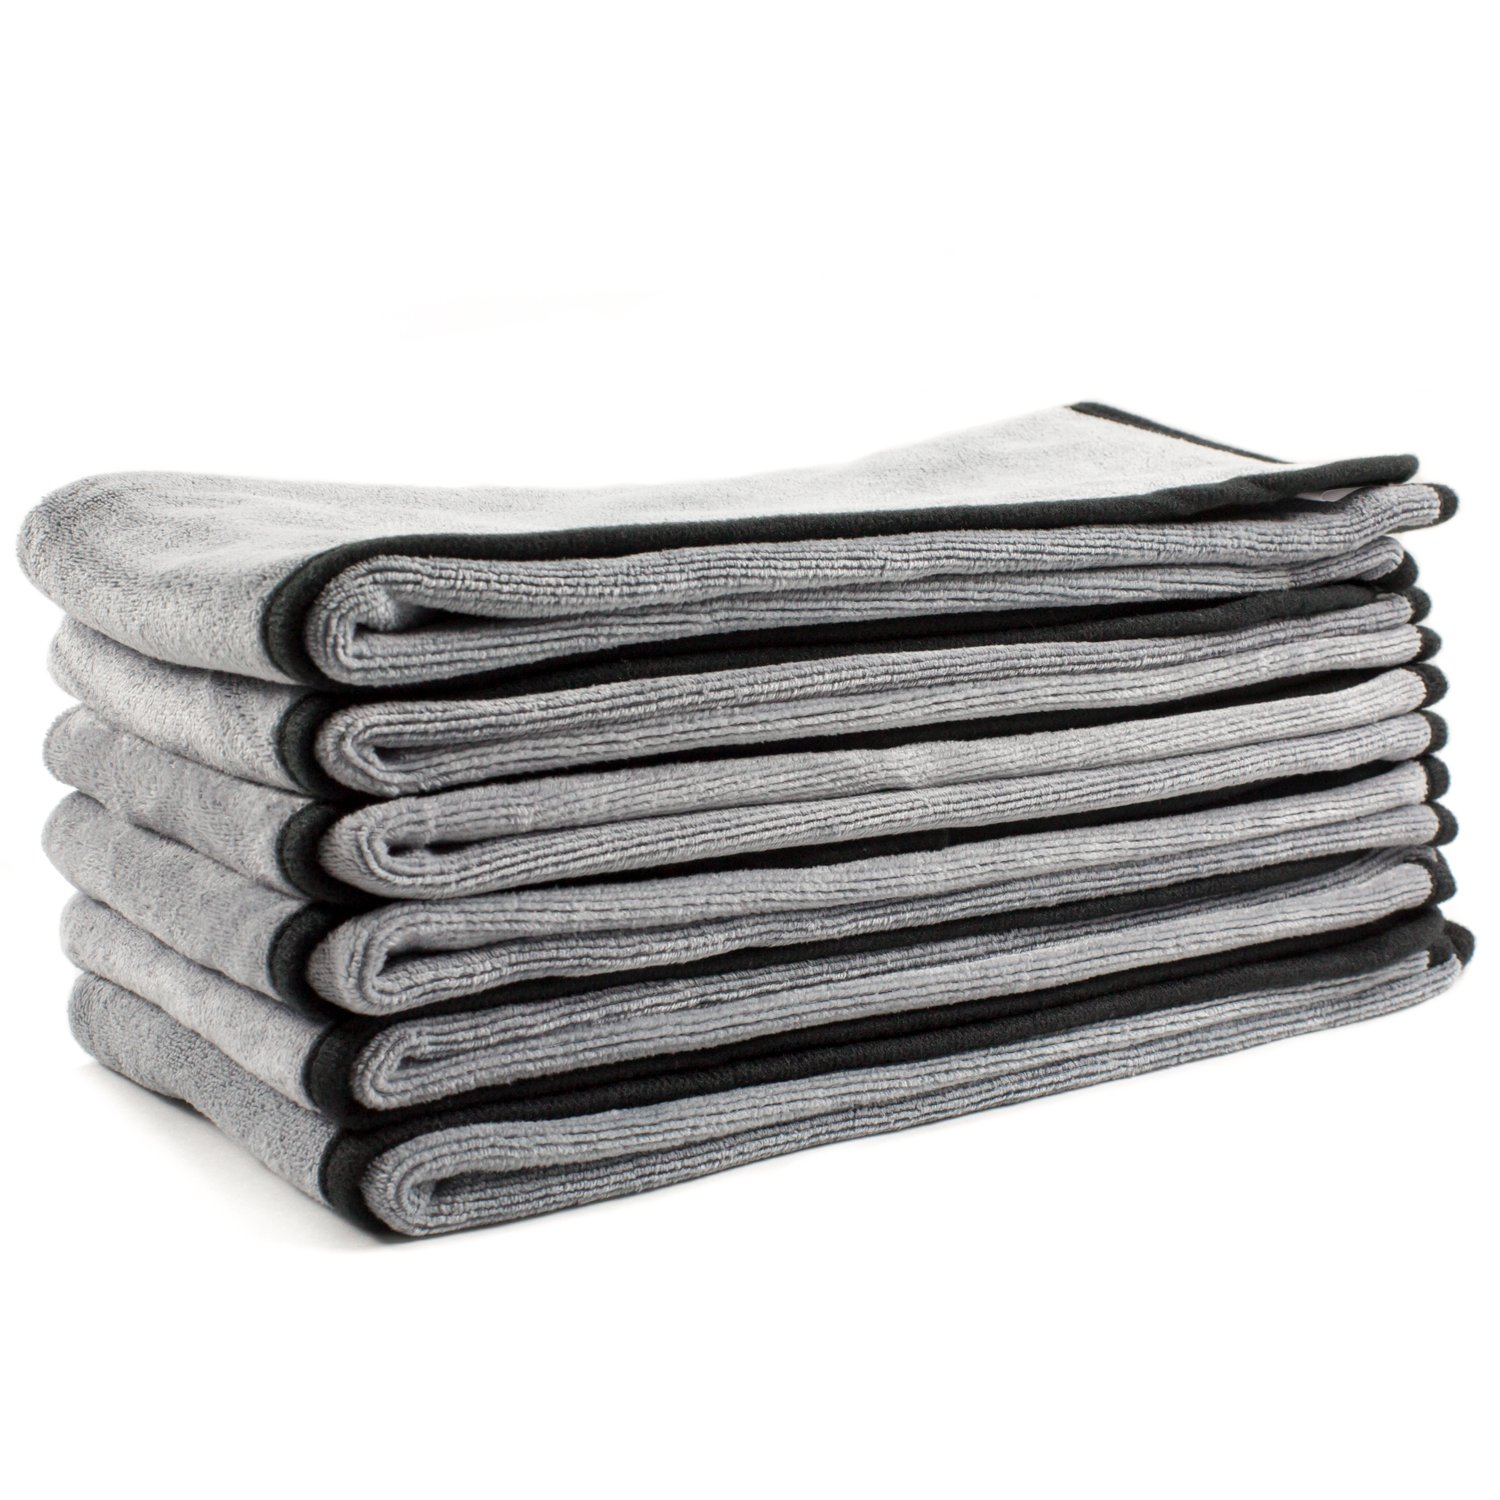 Zwipes Auto 879-2 Professional Microfiber Waffle Drying Towel, 25 in. x 36 in., 2-Pack